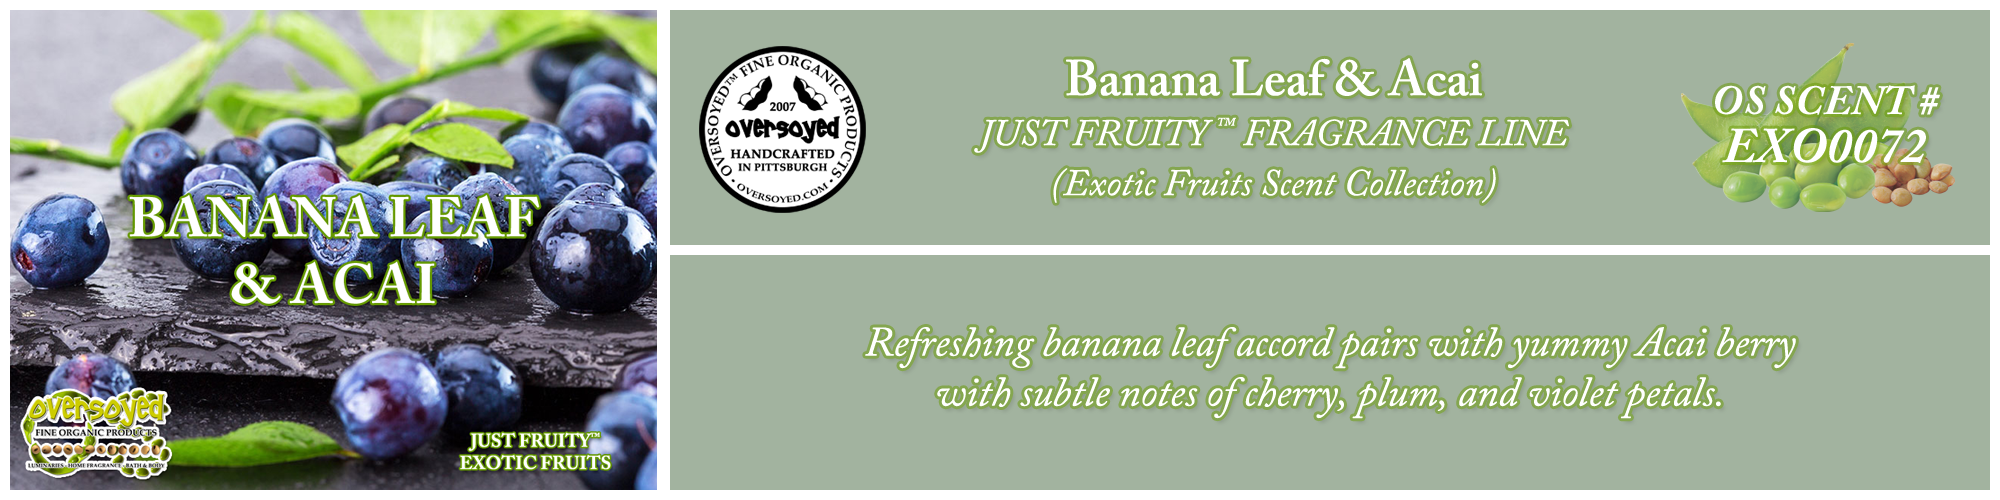 Banana Leaf & Acai Handcrafted Products Collection